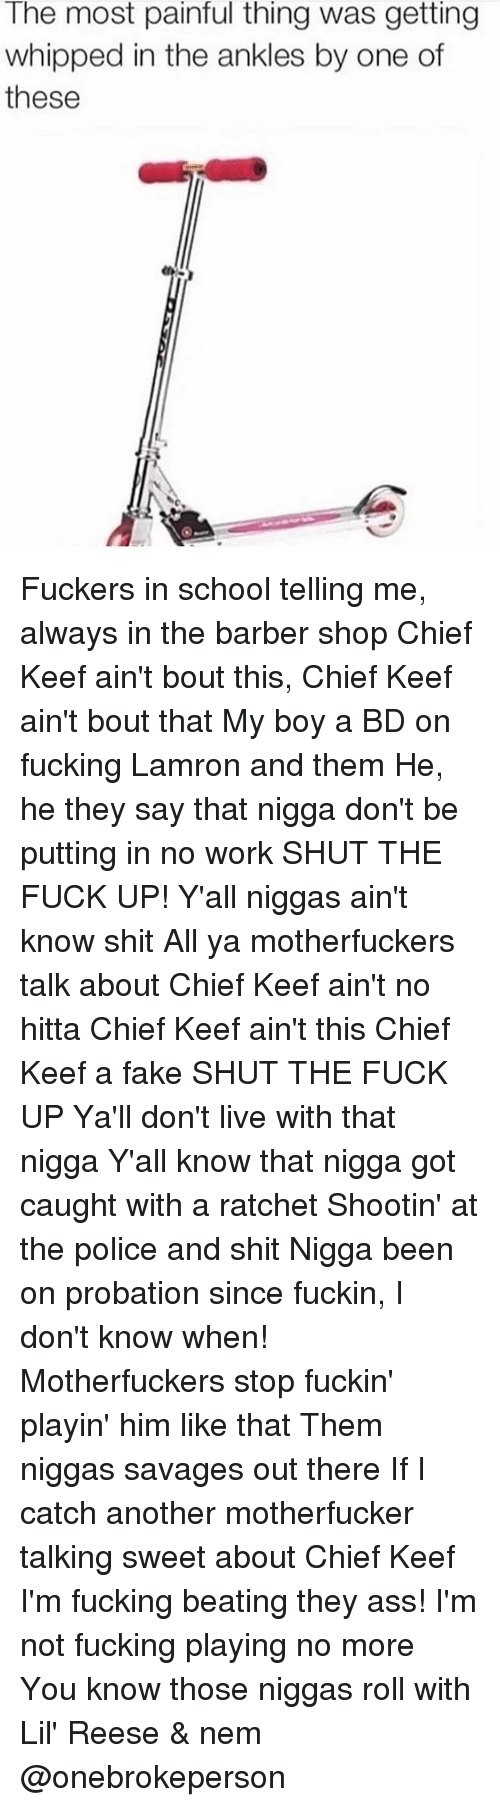 Keefs: The most painful thing was getting  whipped in the ankles by one of  these Fuckers in school telling me, always in the barber shop Chief Keef ain't bout this, Chief Keef ain't bout that My boy a BD on fucking Lamron and them He, he they say that nigga don't be putting in no work SHUT THE FUCK UP! Y'all niggas ain't know shit All ya motherfuckers talk about Chief Keef ain't no hitta Chief Keef ain't this Chief Keef a fake SHUT THE FUCK UP Ya'll don't live with that nigga Y'all know that nigga got caught with a ratchet Shootin' at the police and shit Nigga been on probation since fuckin, I don't know when! Motherfuckers stop fuckin' playin' him like that Them niggas savages out there If I catch another motherfucker talking sweet about Chief Keef I'm fucking beating they ass! I'm not fucking playing no more You know those niggas roll with Lil' Reese & nem @onebrokeperson